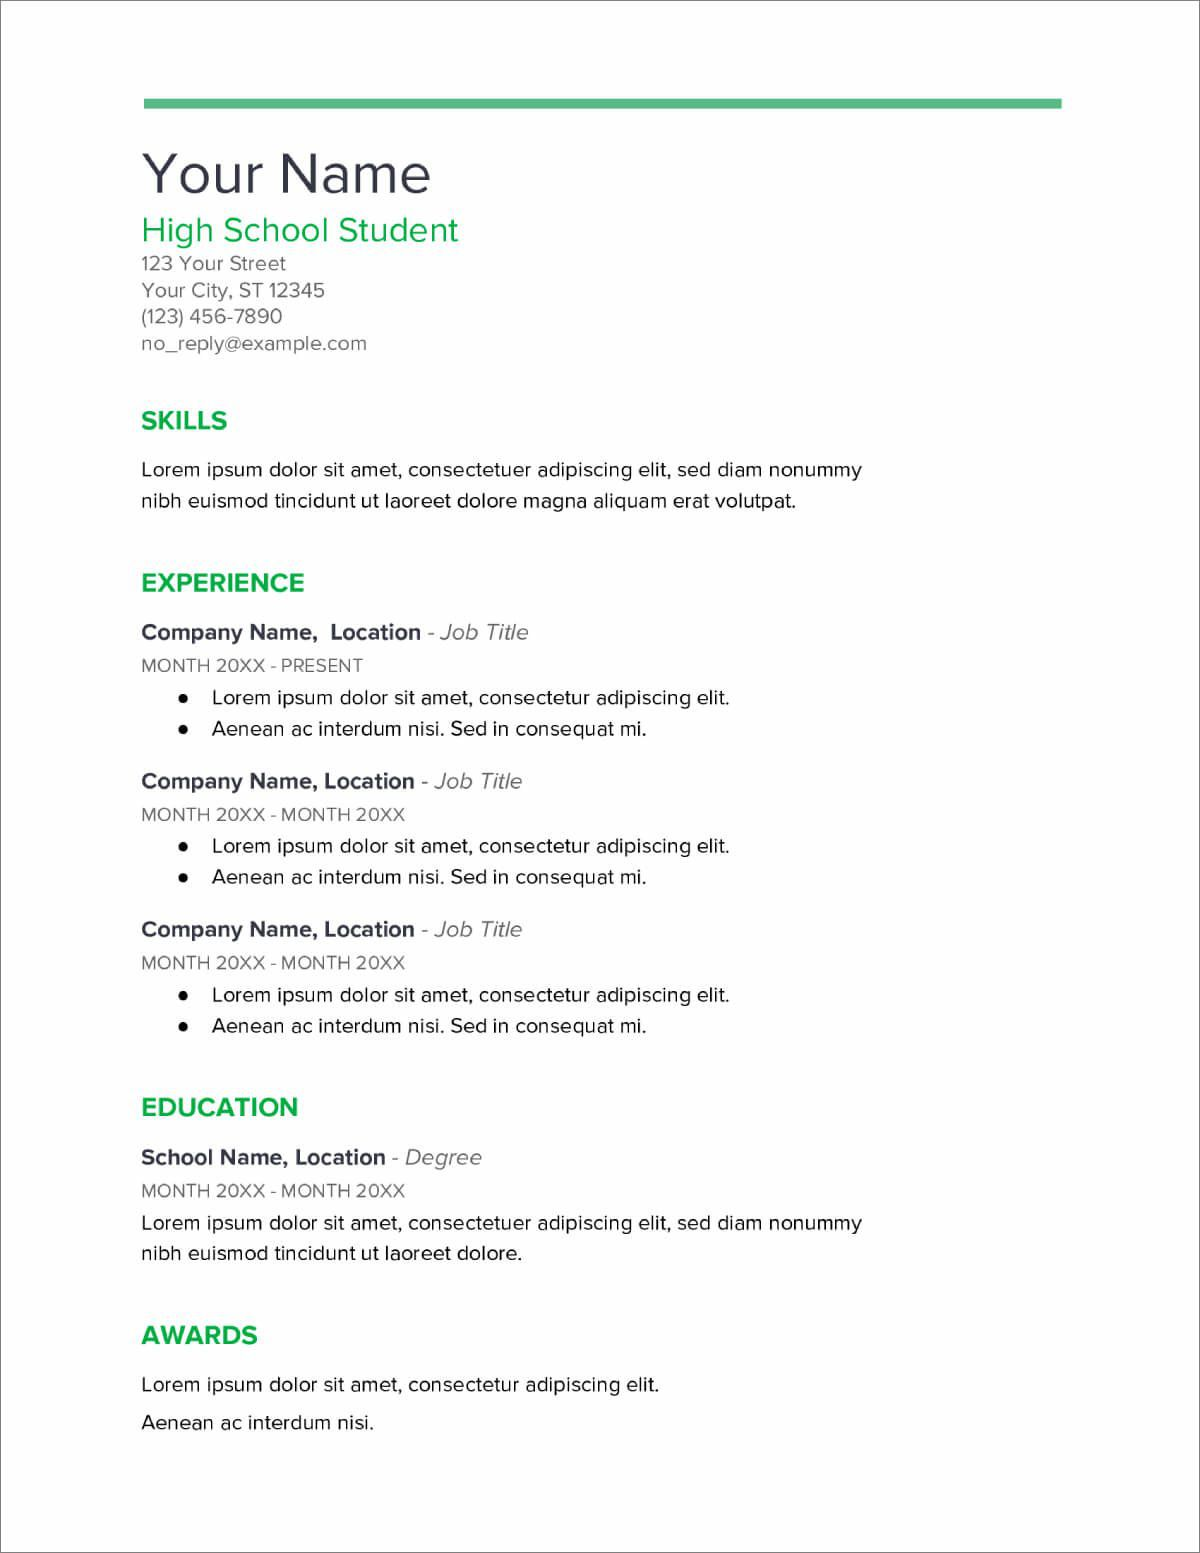 007 Rare Resume Template High School Student Example  Students Easy For Curriculum Vitae Format Pdf Free DownloadableFull